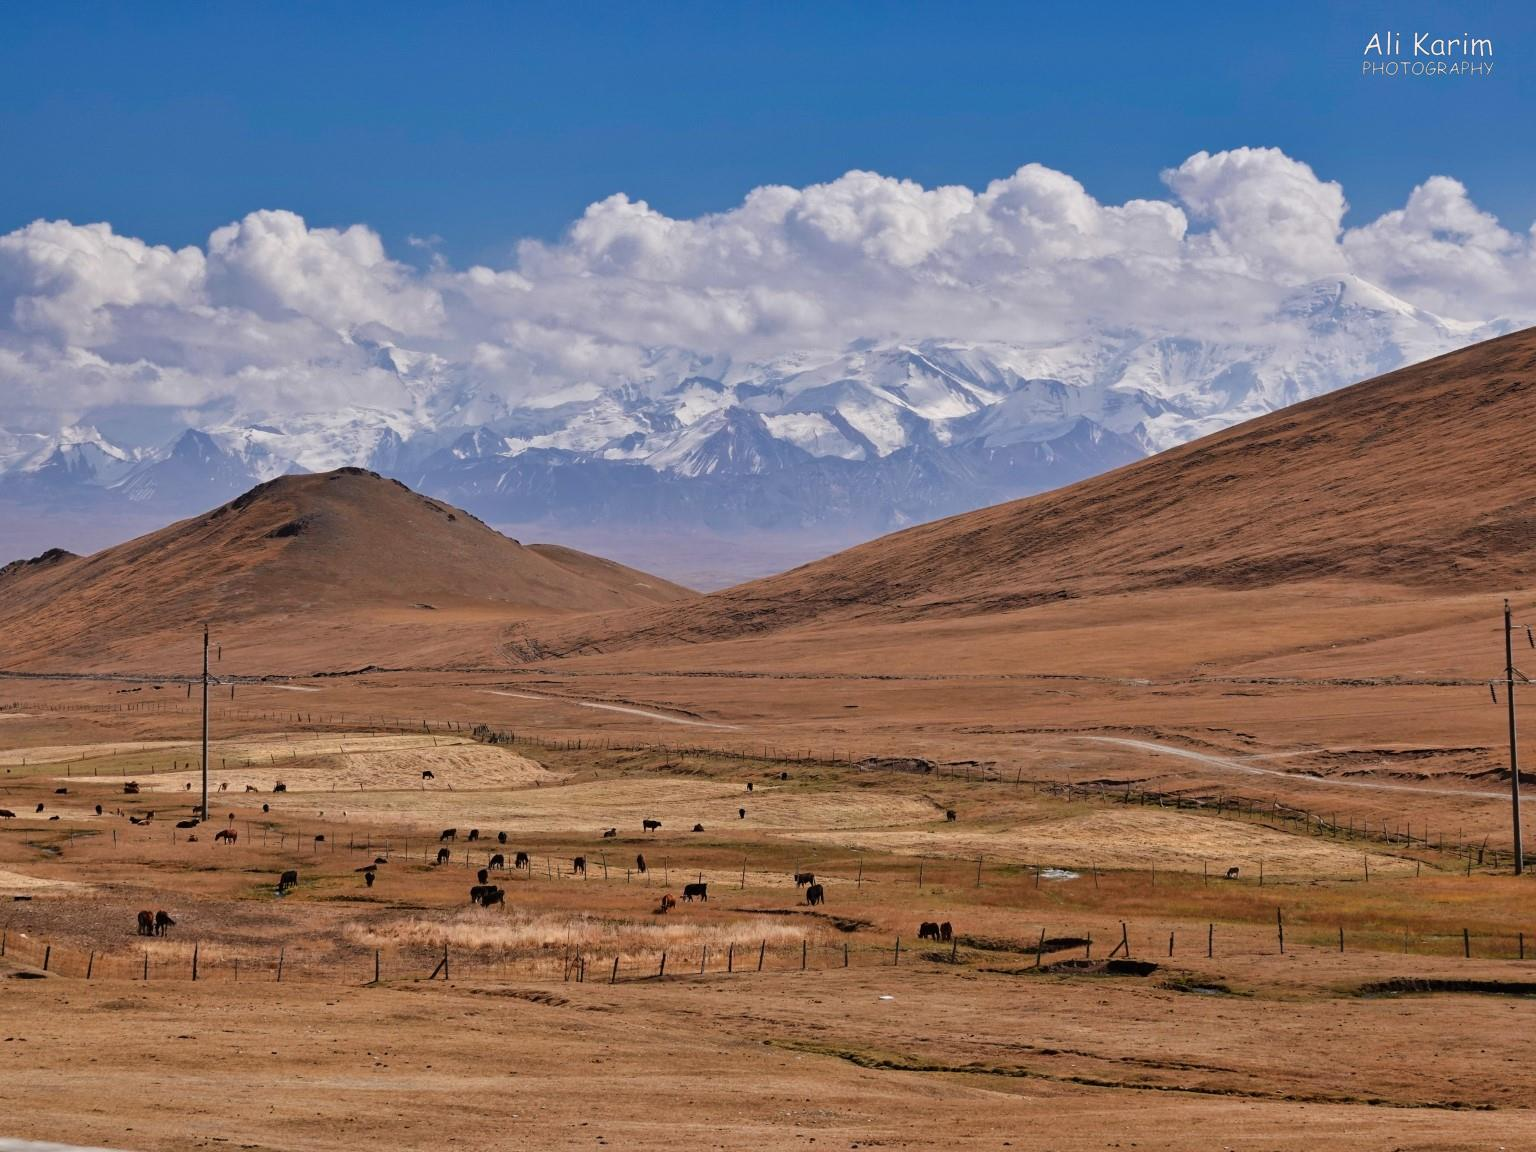 Silk Road 16: More Osh, Kyrgyzstan More remote nomadic living, snow-capped Alay mountains looming behind